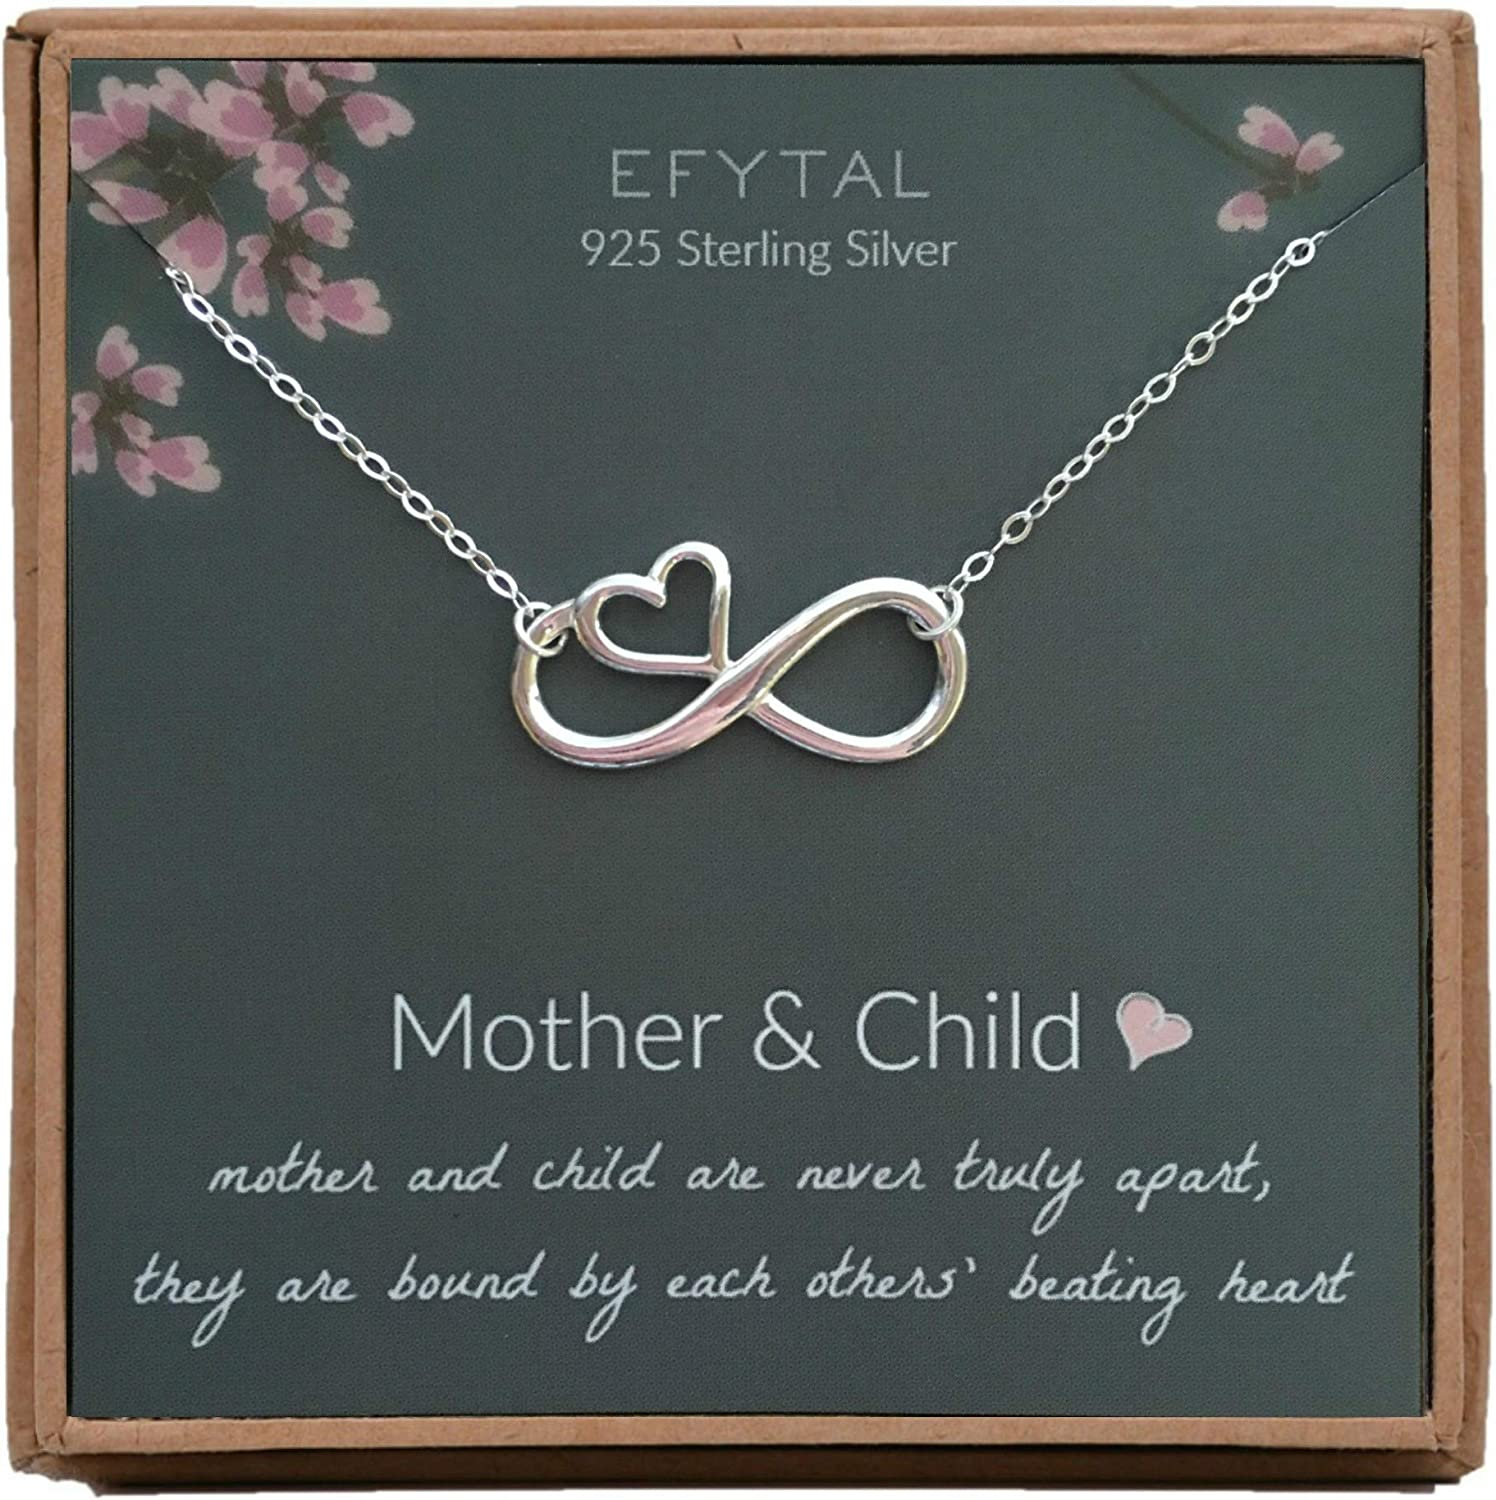 EFYTAL Mom Gifts, 925 Sterling Silver Infinity with Heart Necklace for Mother from Child, Mom Necklaces for Women, Best Birthday Gift Ideas, Pendant Mother's Day Jewelry For Her, Mothers Day